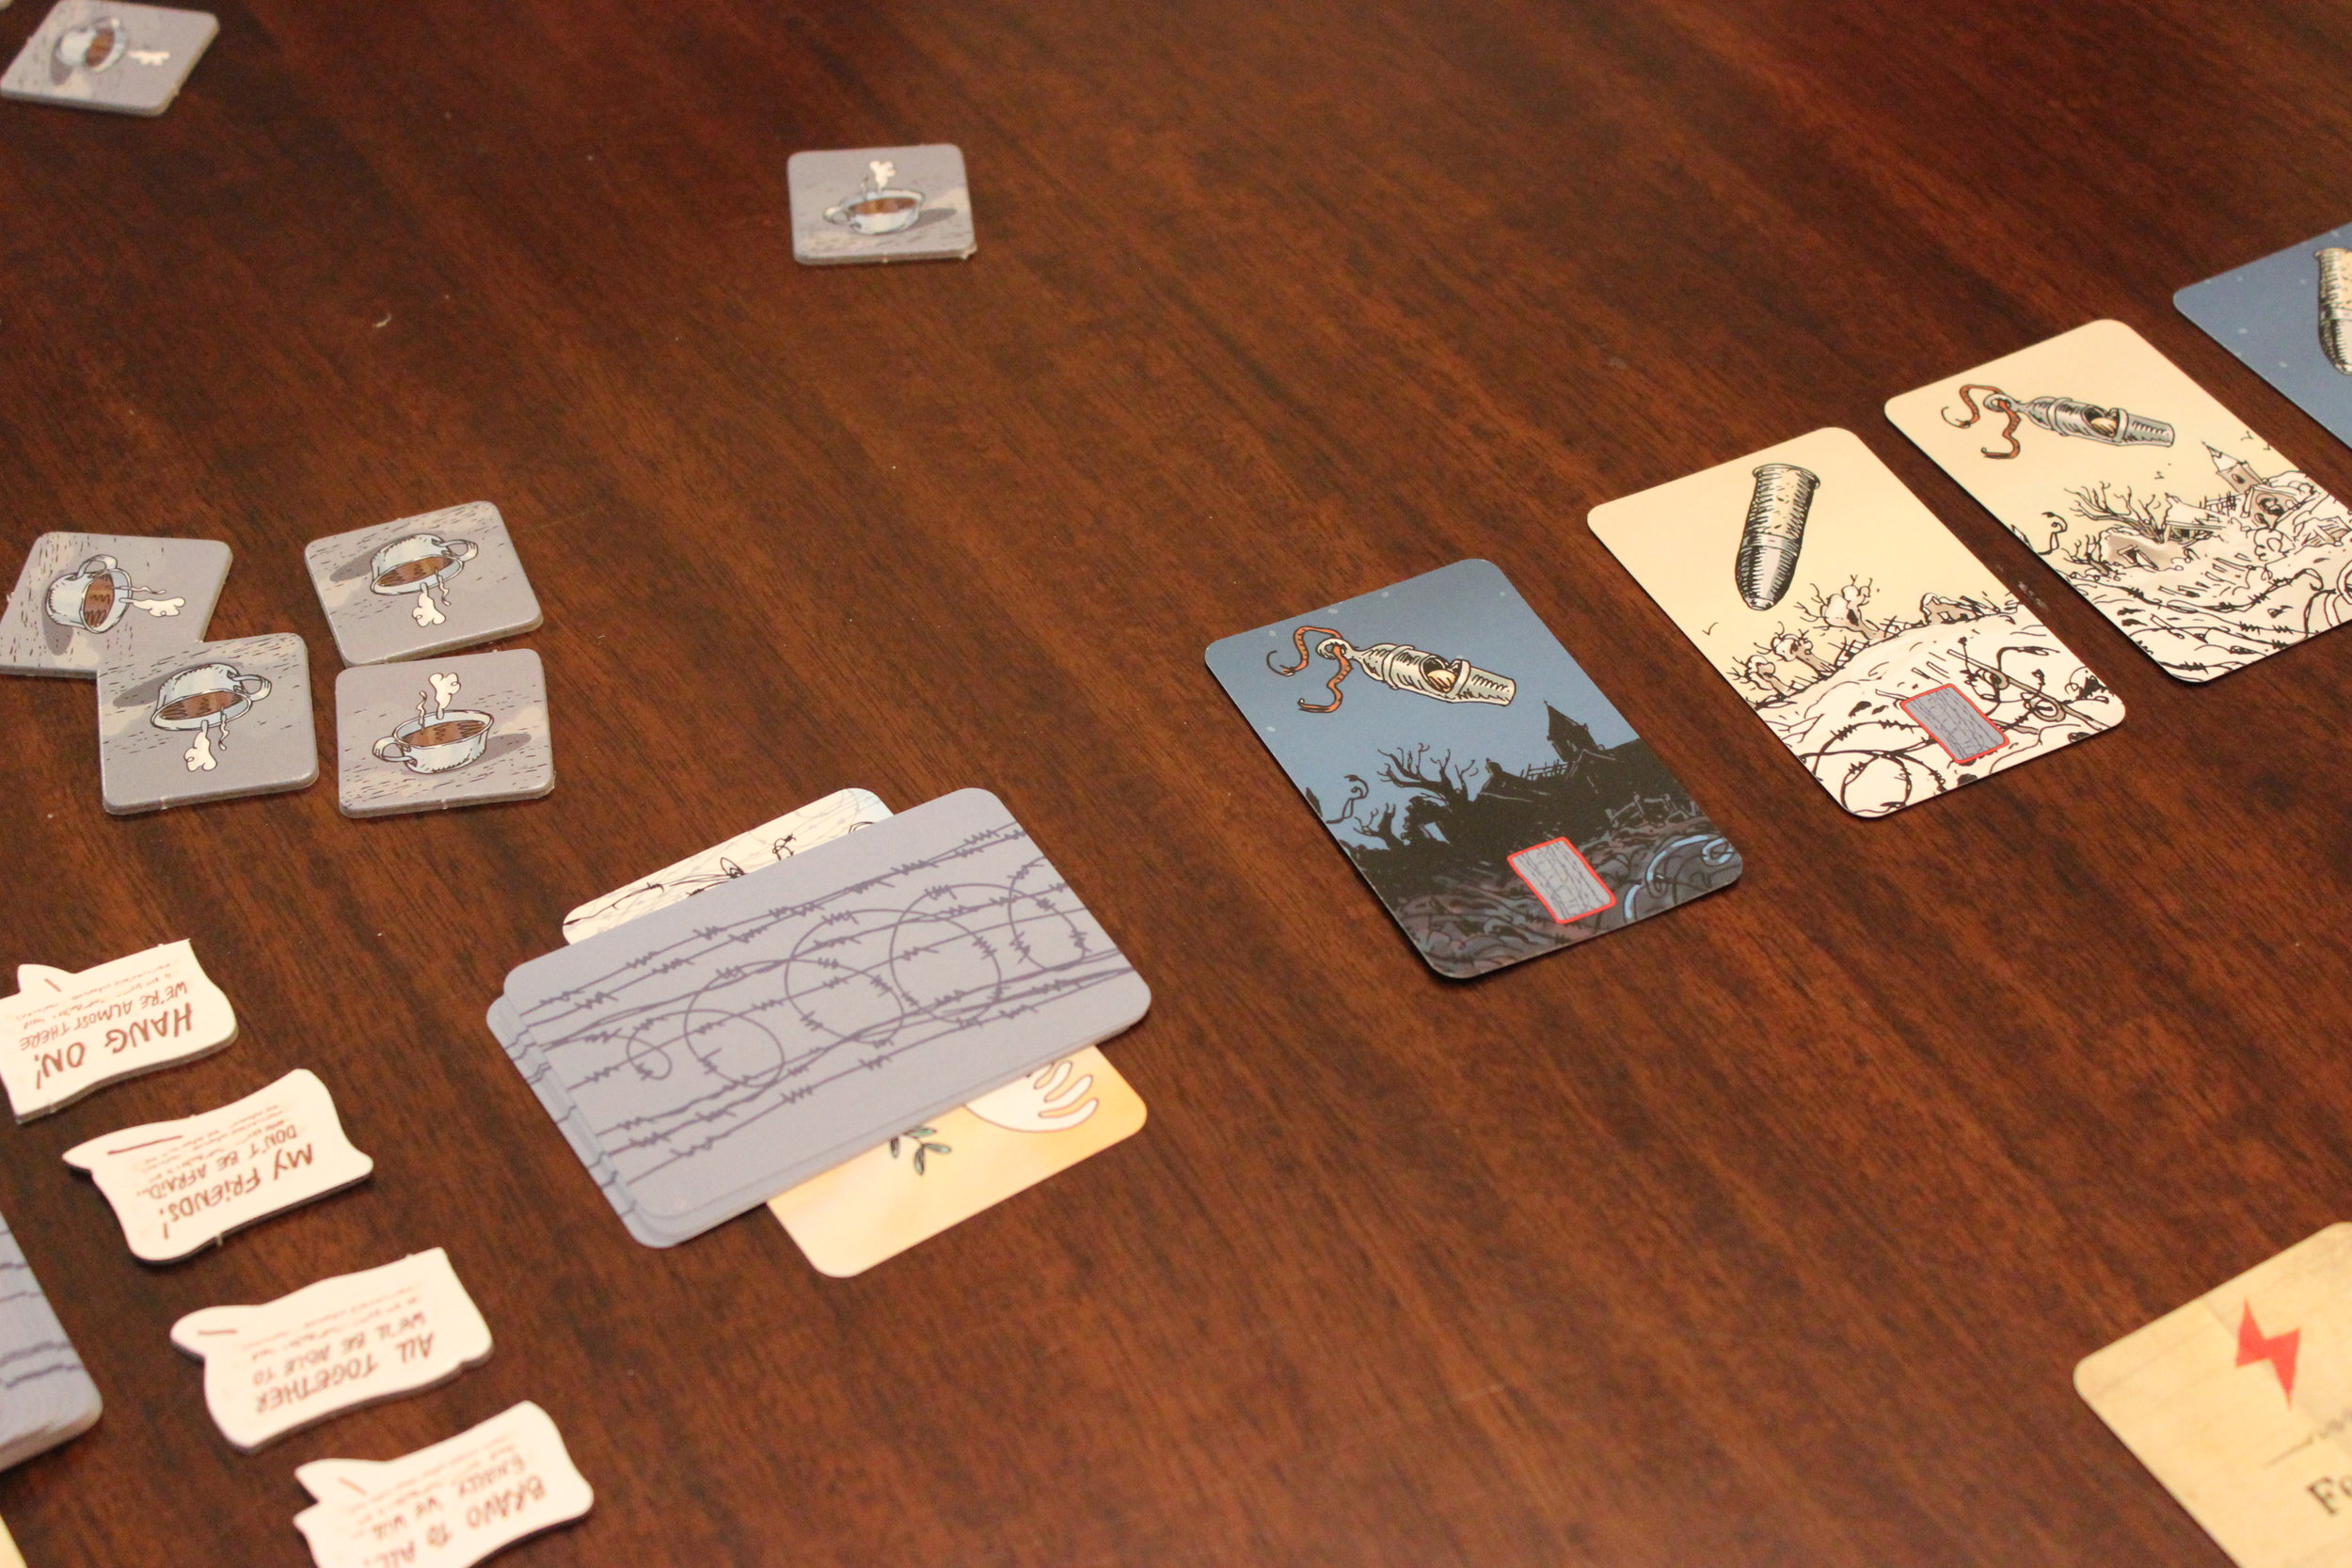 Midway through a four-player game.